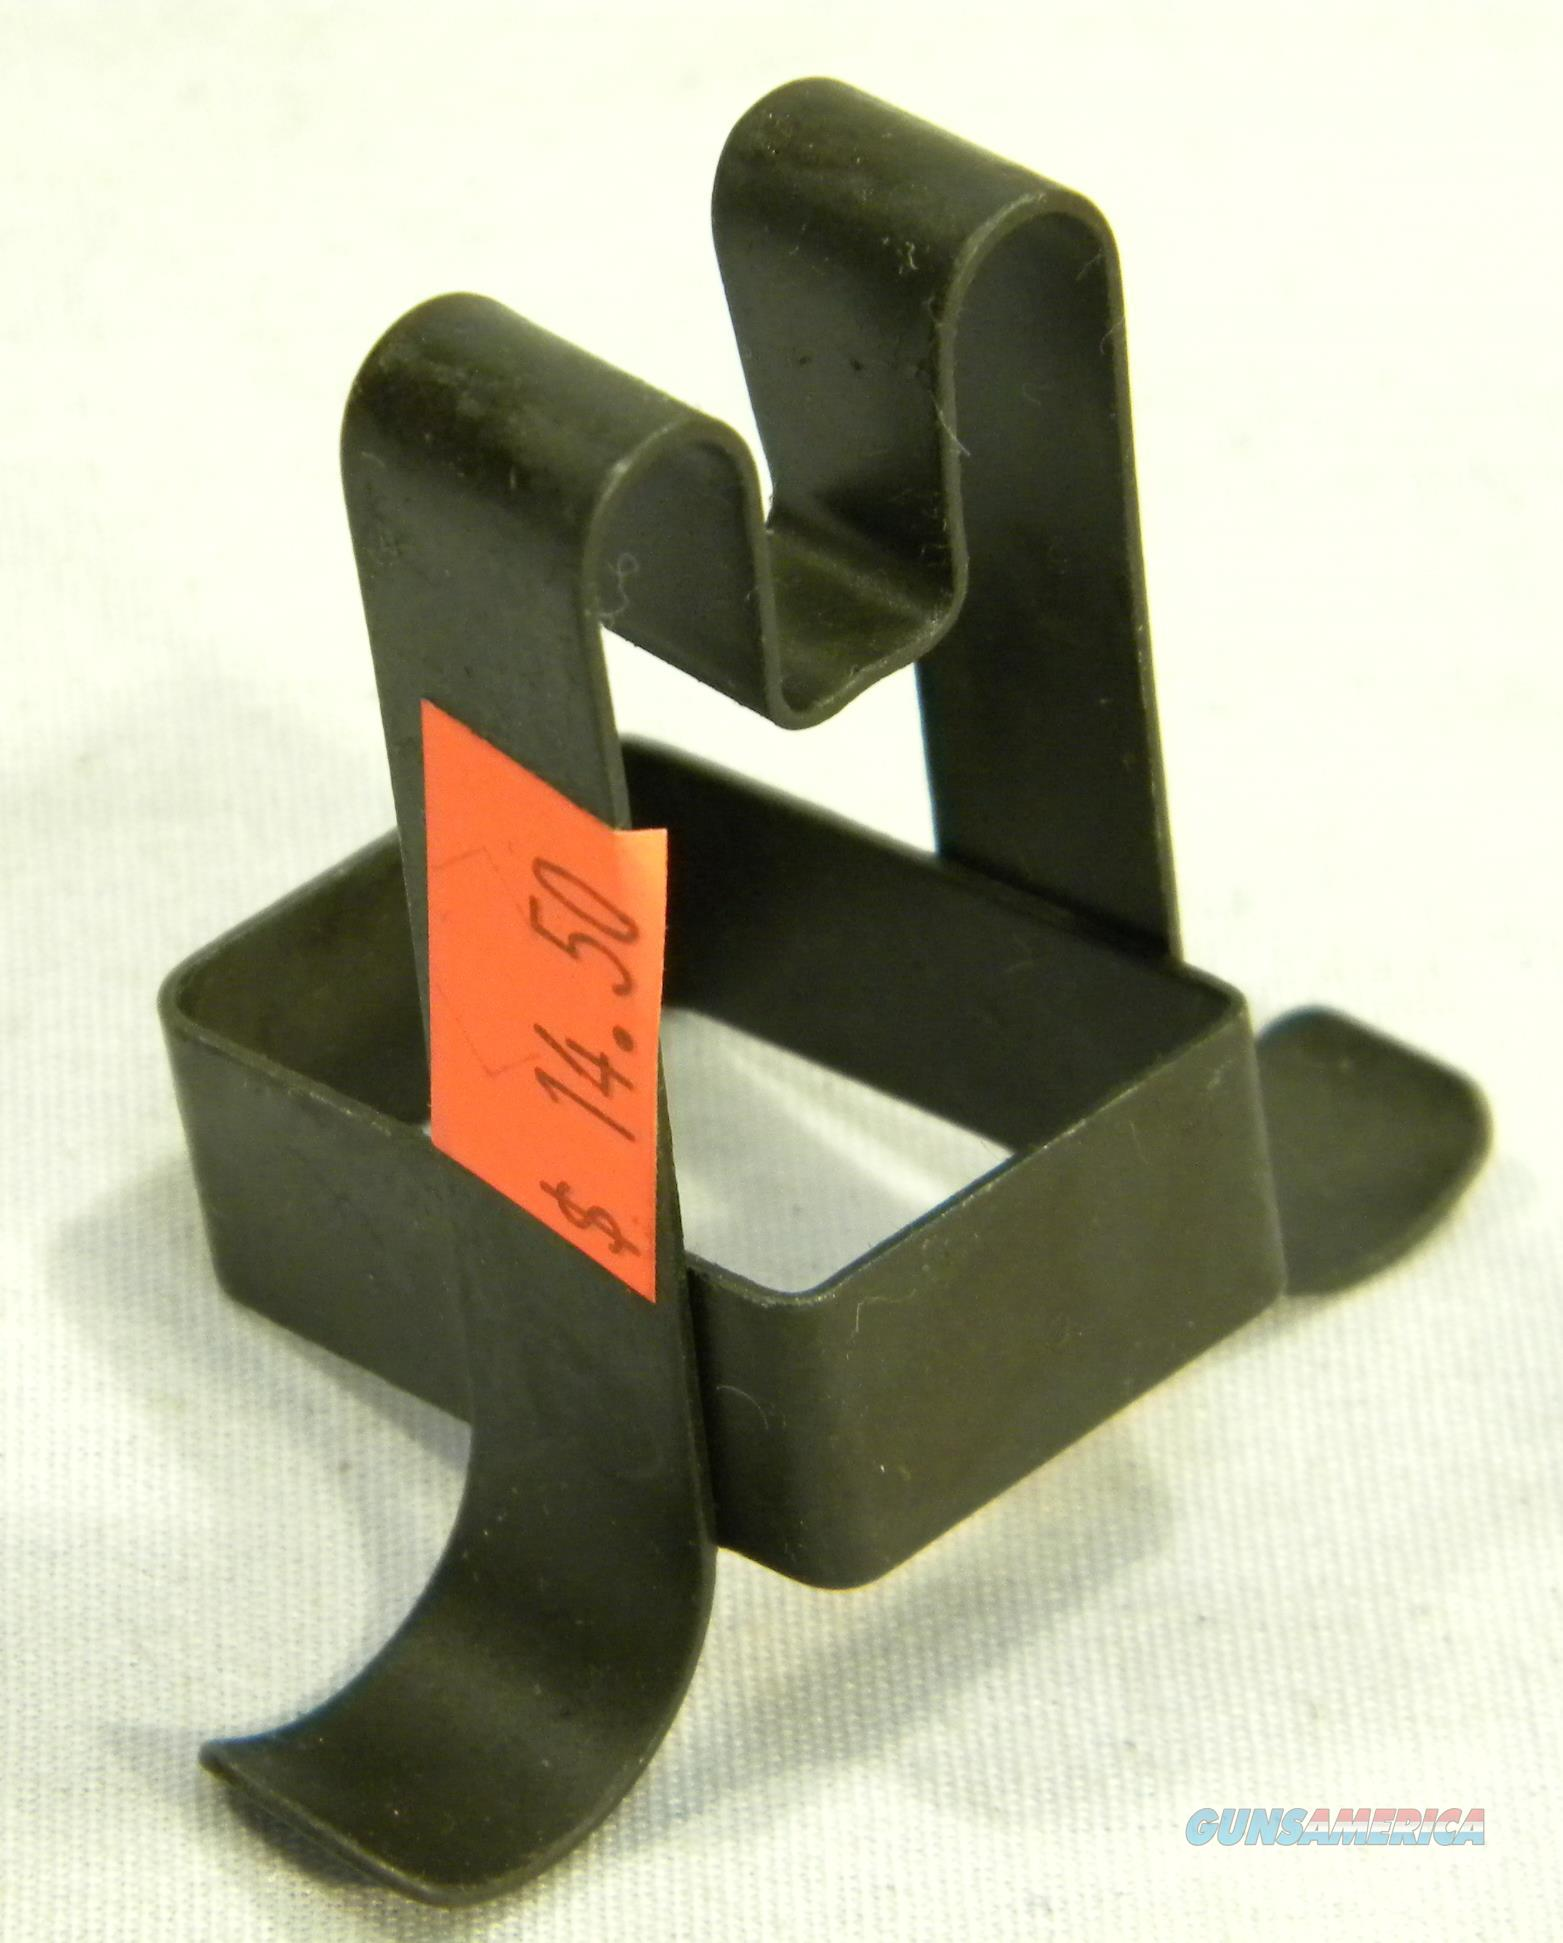 Steel Magazine Loader For Uzi Steel Double-Stacked 9mm Mags  Non-Guns > Miscellaneous